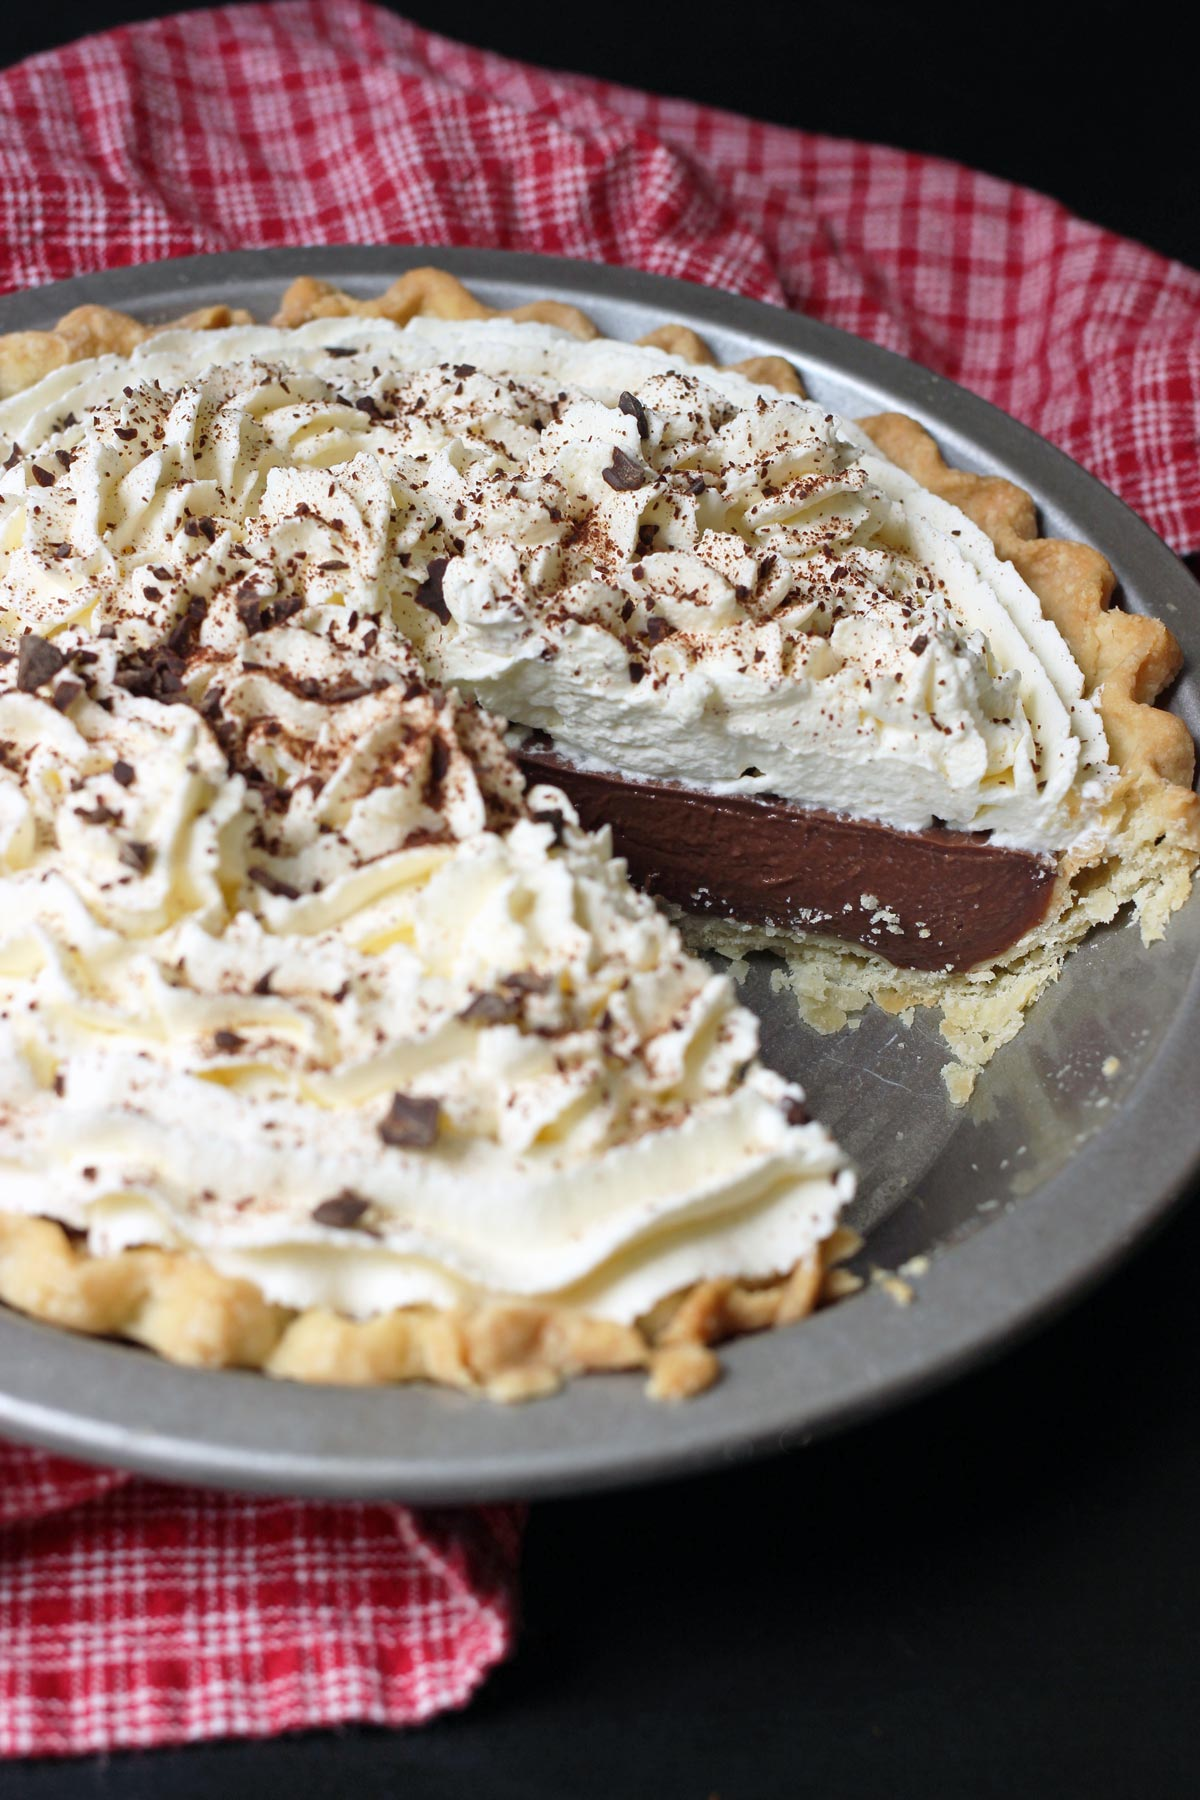 chocolate cream pie with wedge missing